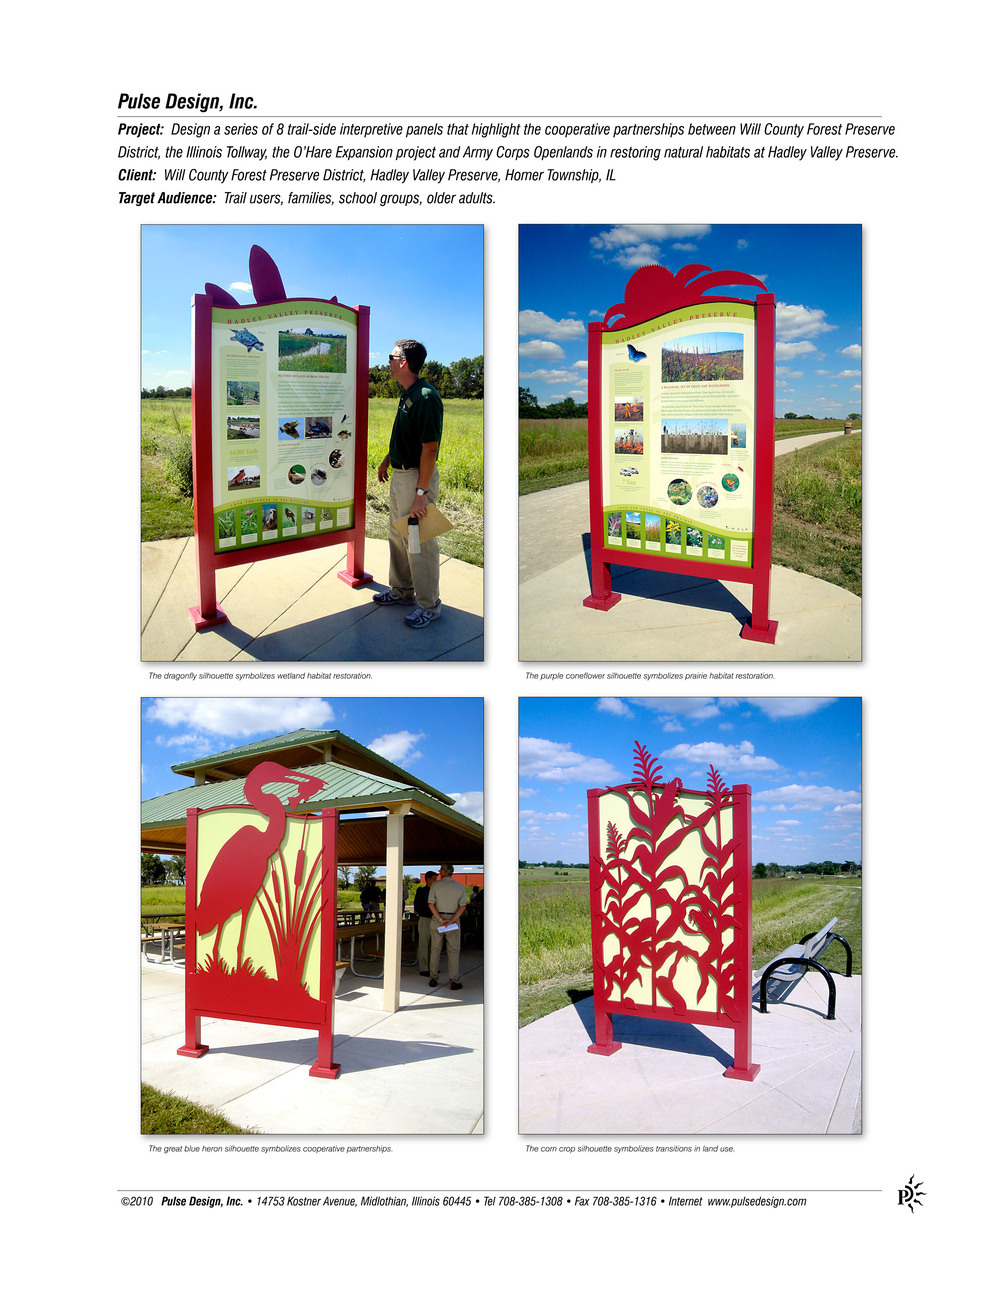 Hadley-Valley-Trail-Signs-1-Pulse-Design-Inc.jpg